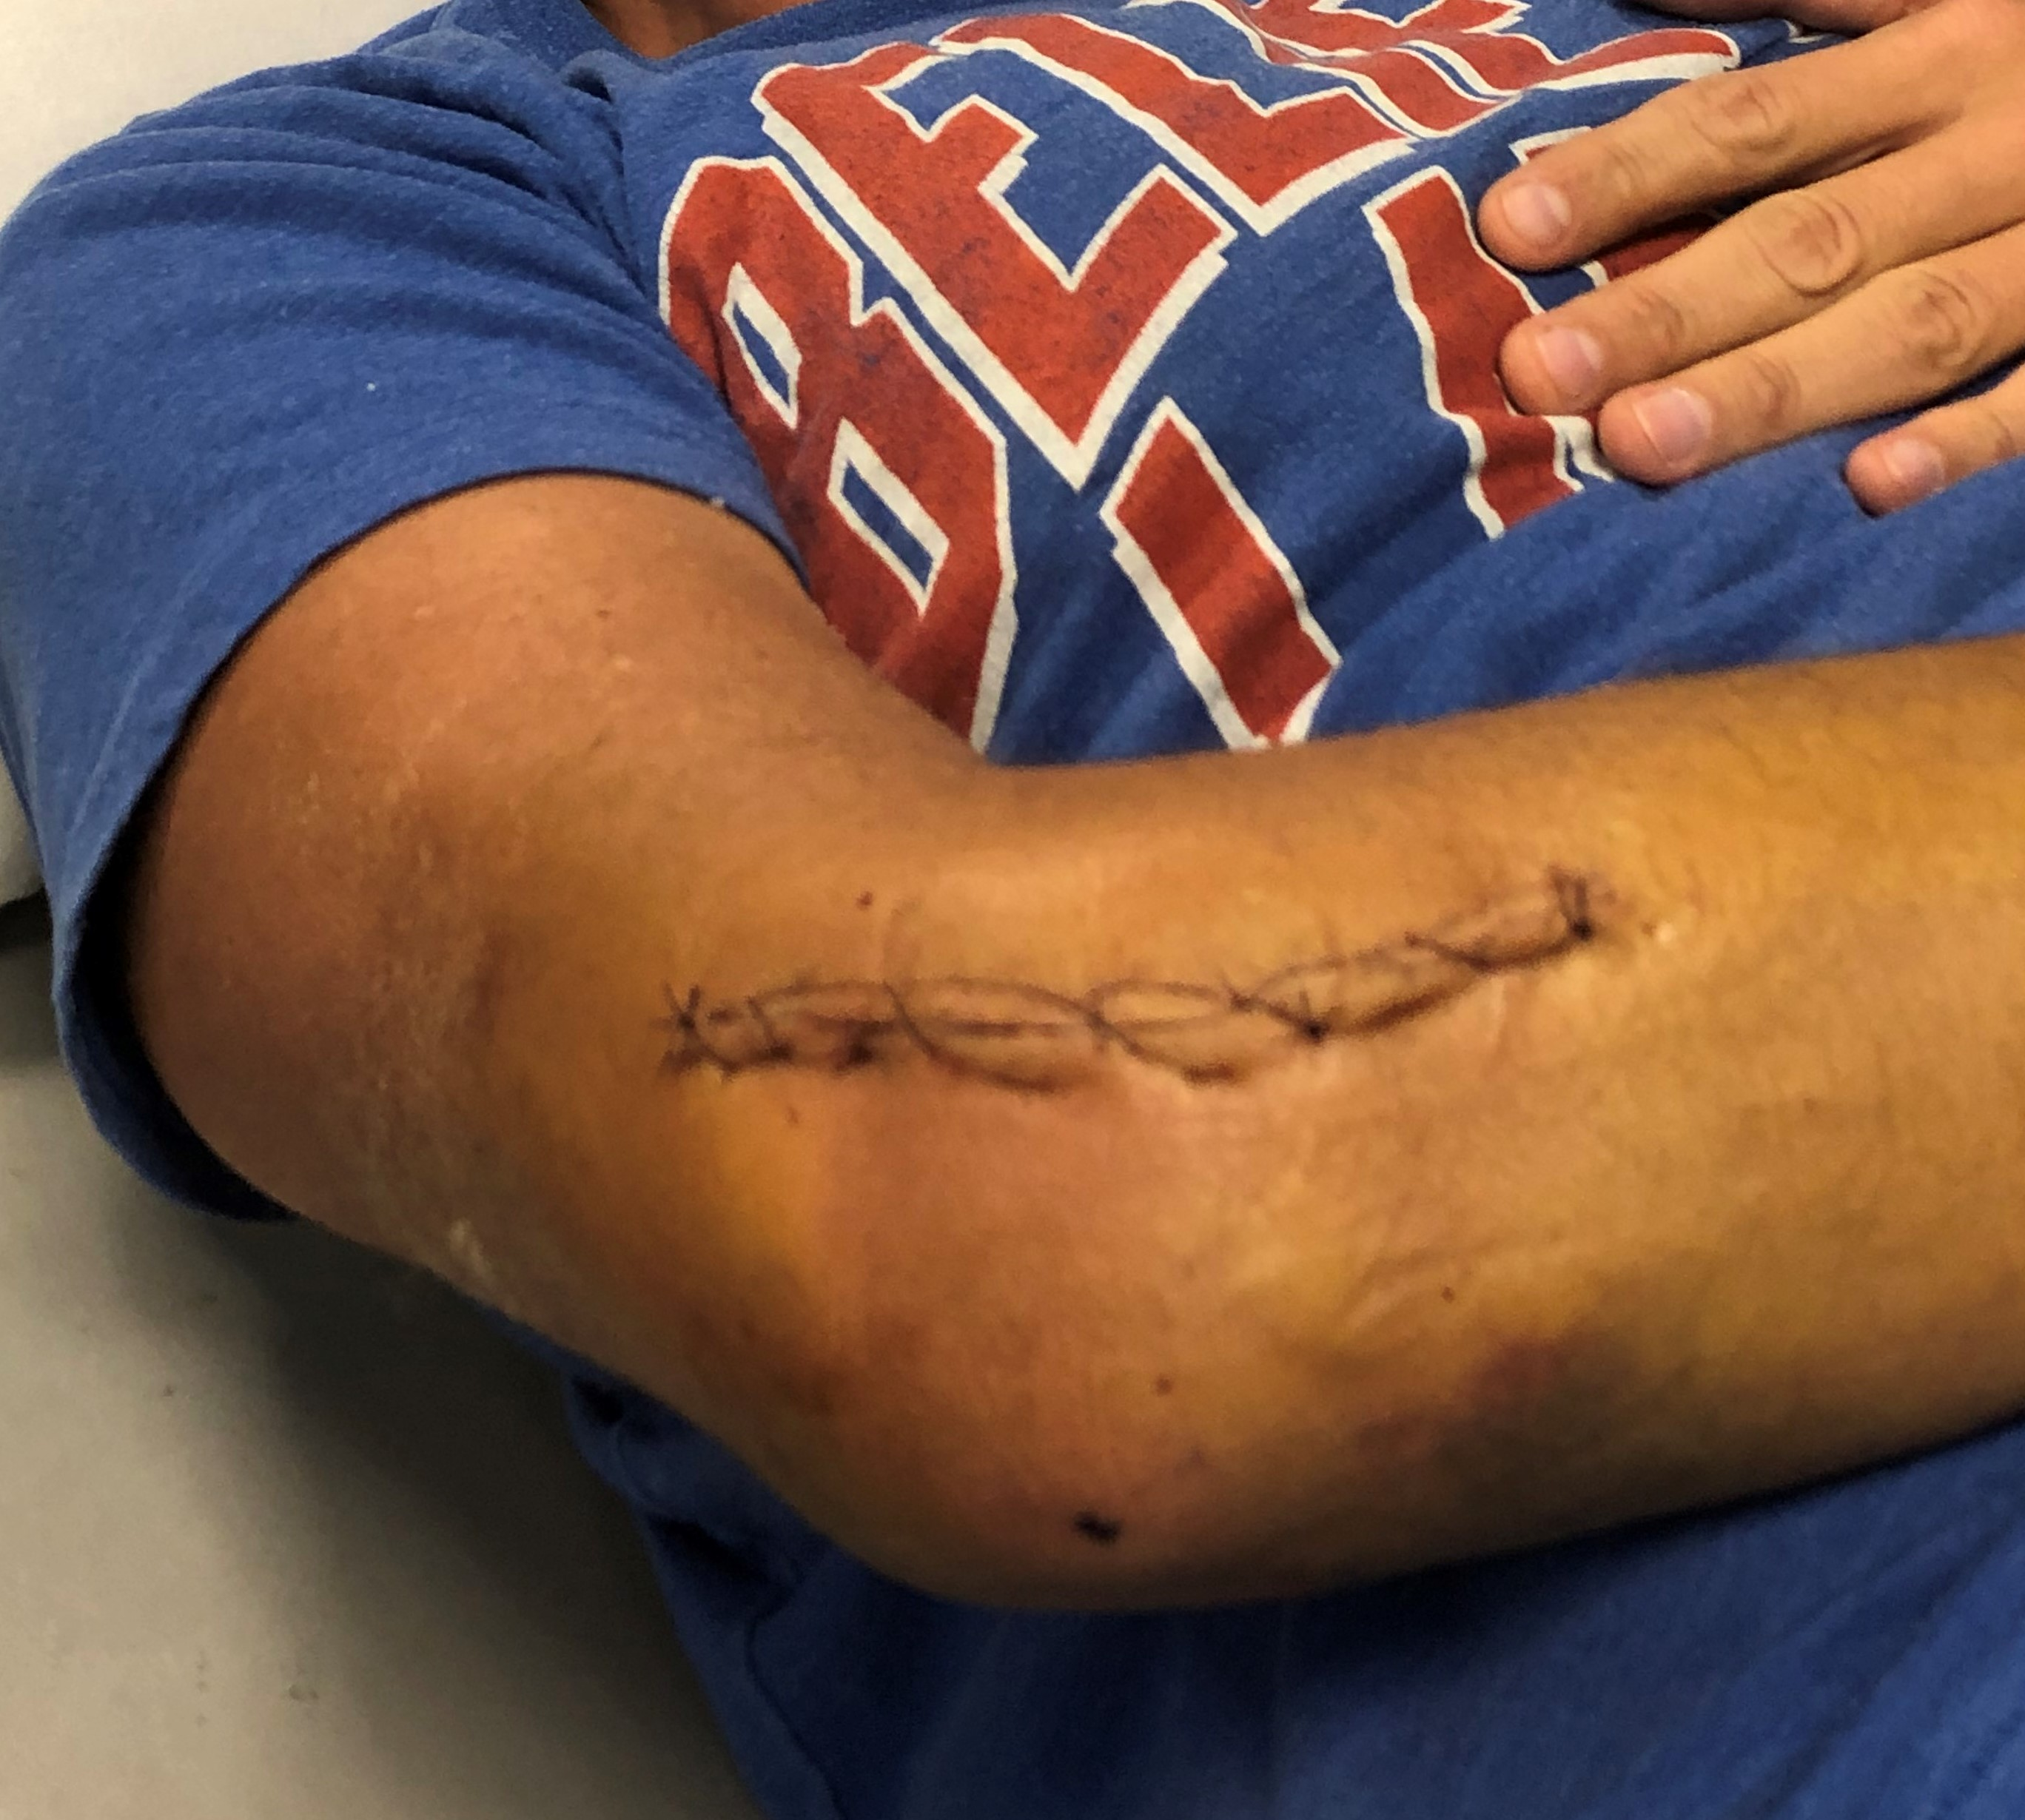 Right elbow of injured person with stitches